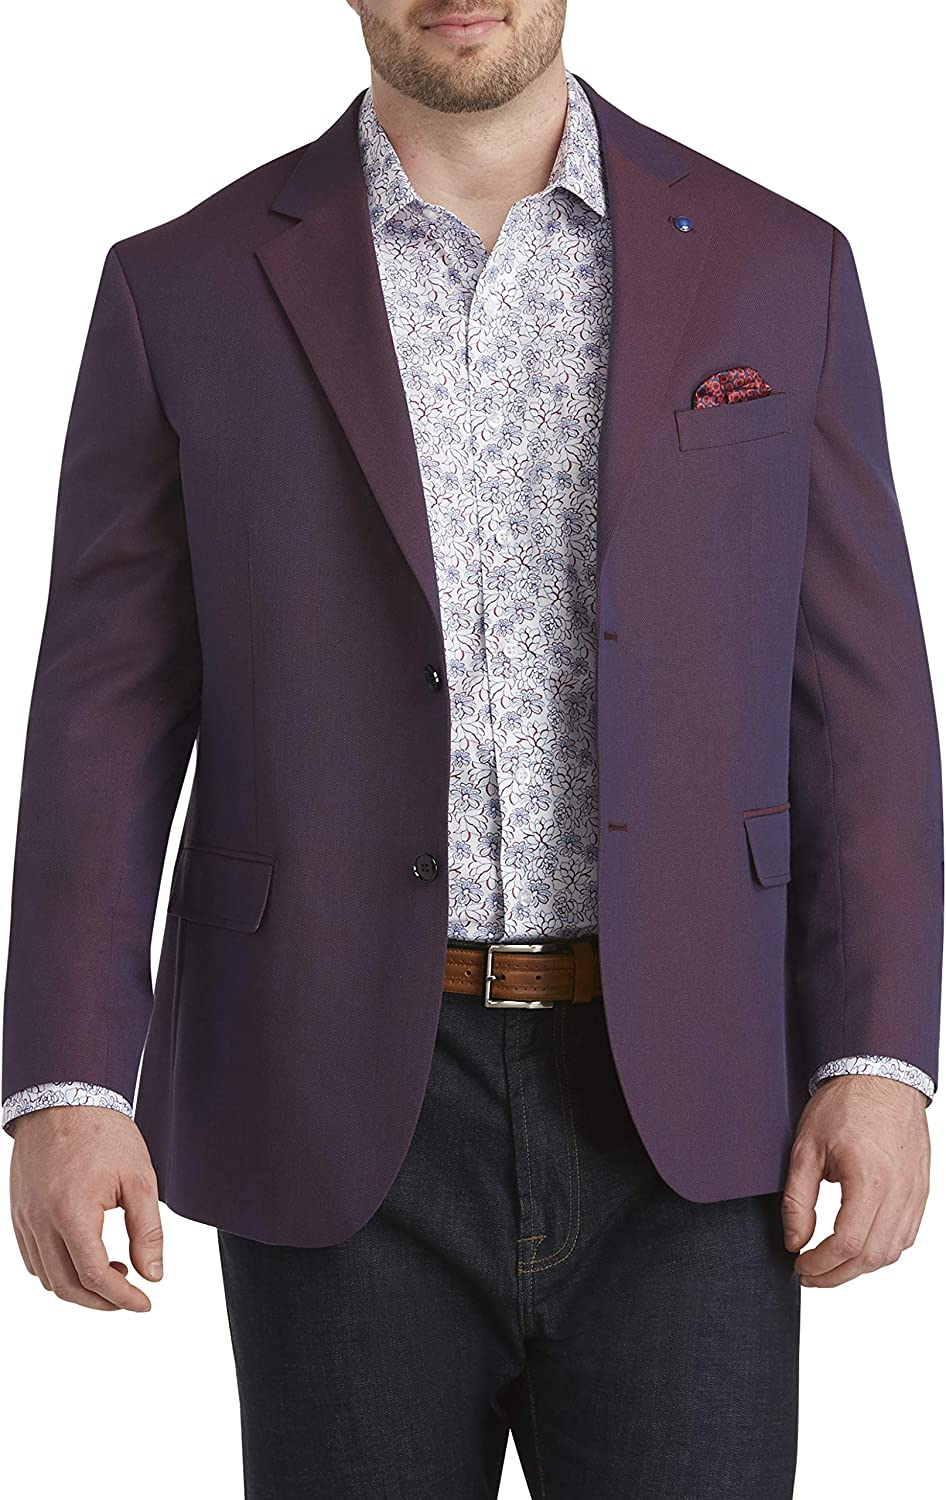 Oak Hill by DXL Big and Tall Jacket-Relaxer Textured Solid Sport Coat, Berry